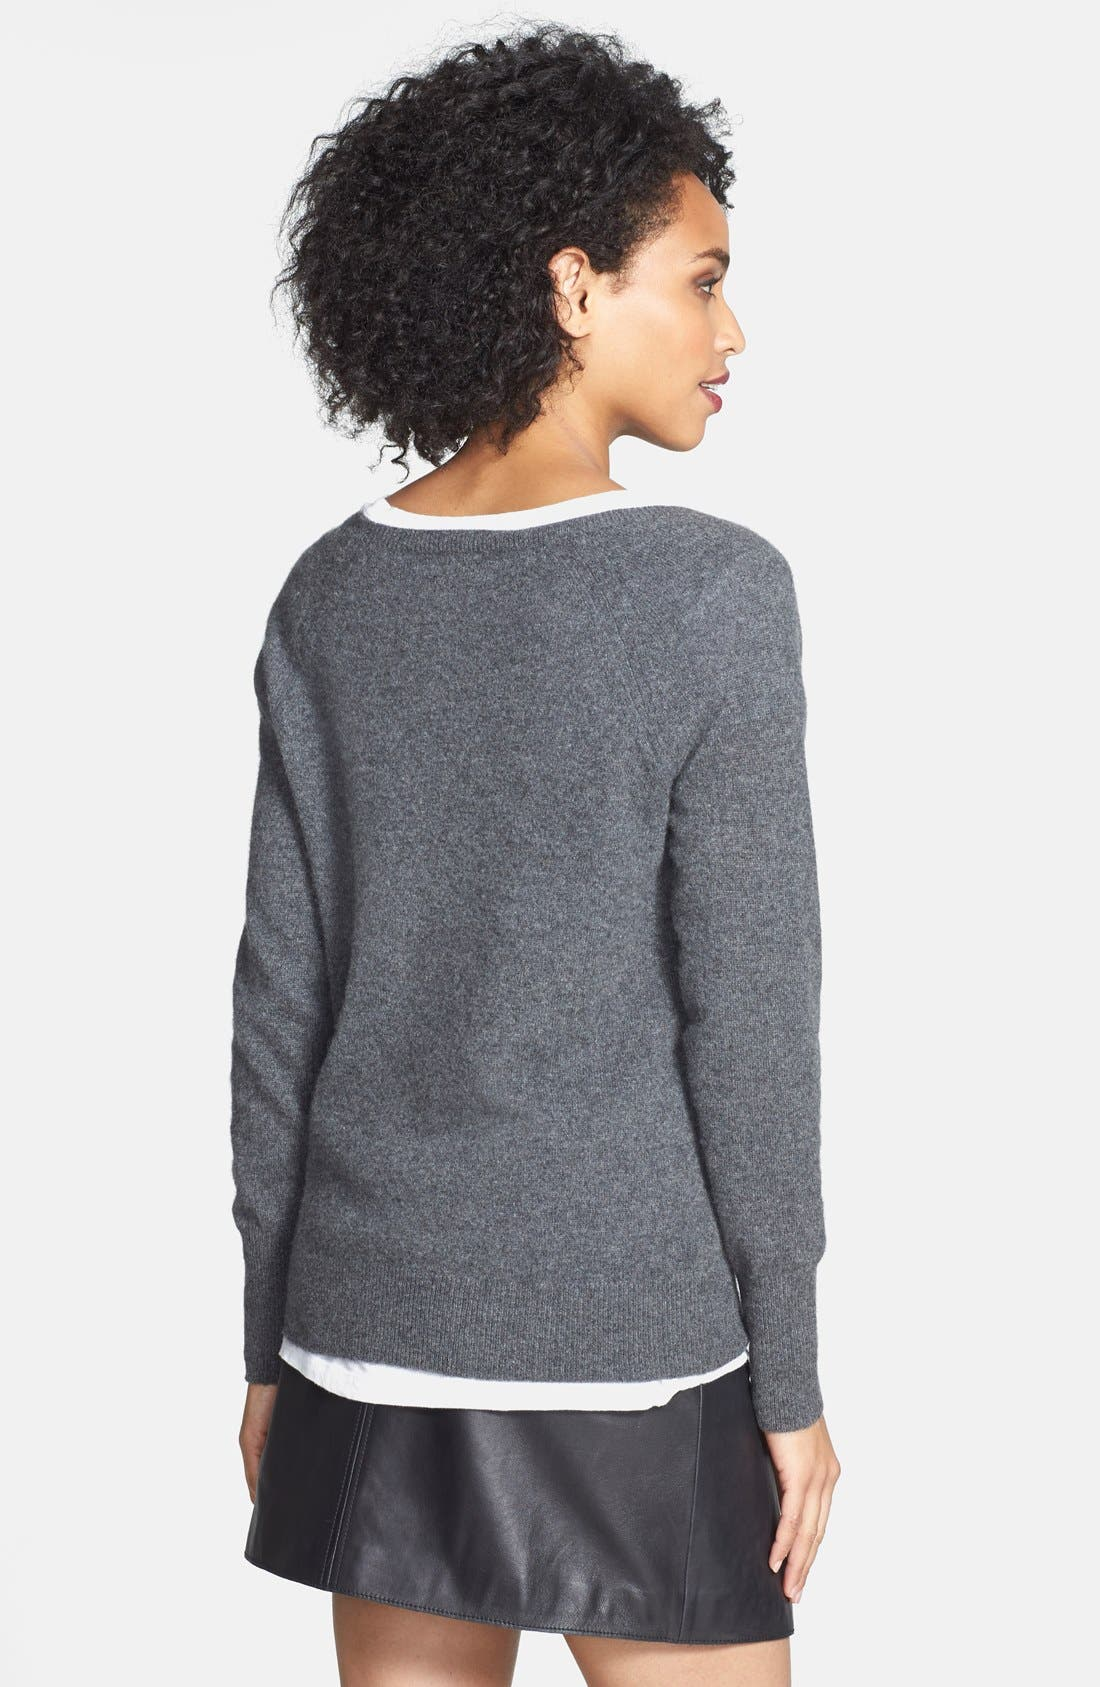 Embellished Neck Cashmere Sweater,                             Alternate thumbnail 2, color,                             Heather Charcoal